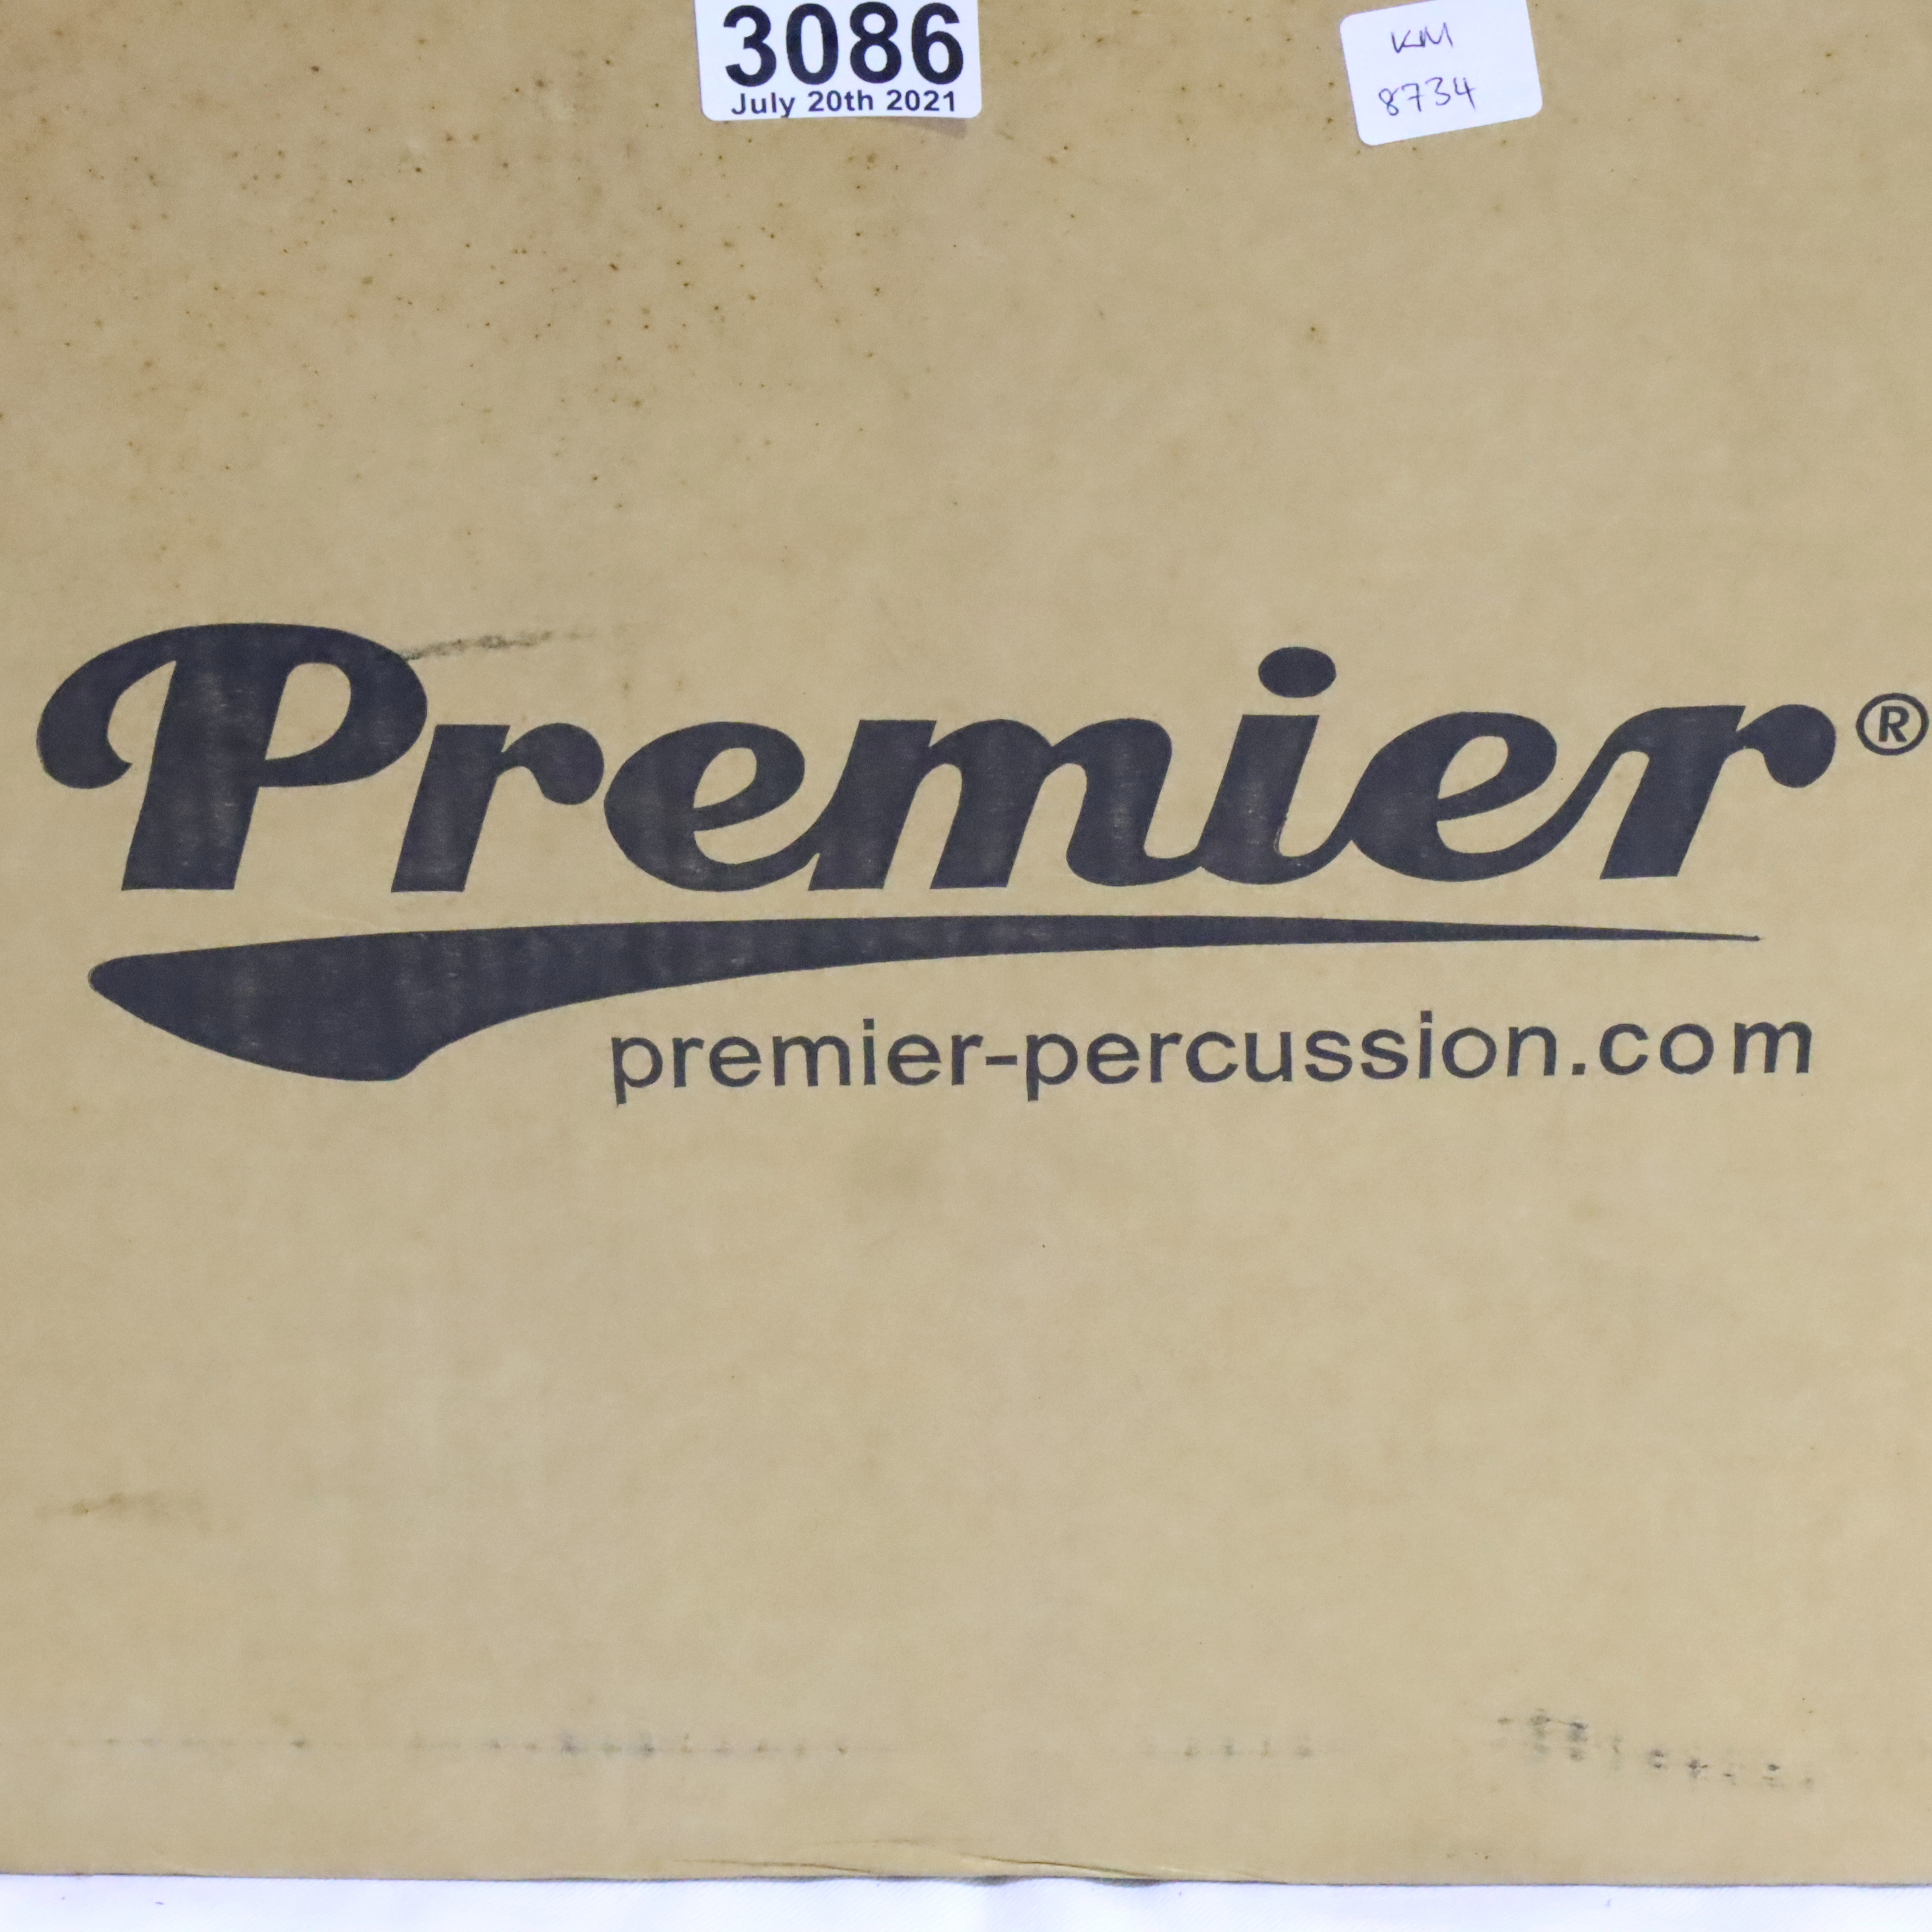 New boxed Premier Percussion drum. Not available for in-house P&P, contact Paul O'Hea at Mailboxes - Image 2 of 4